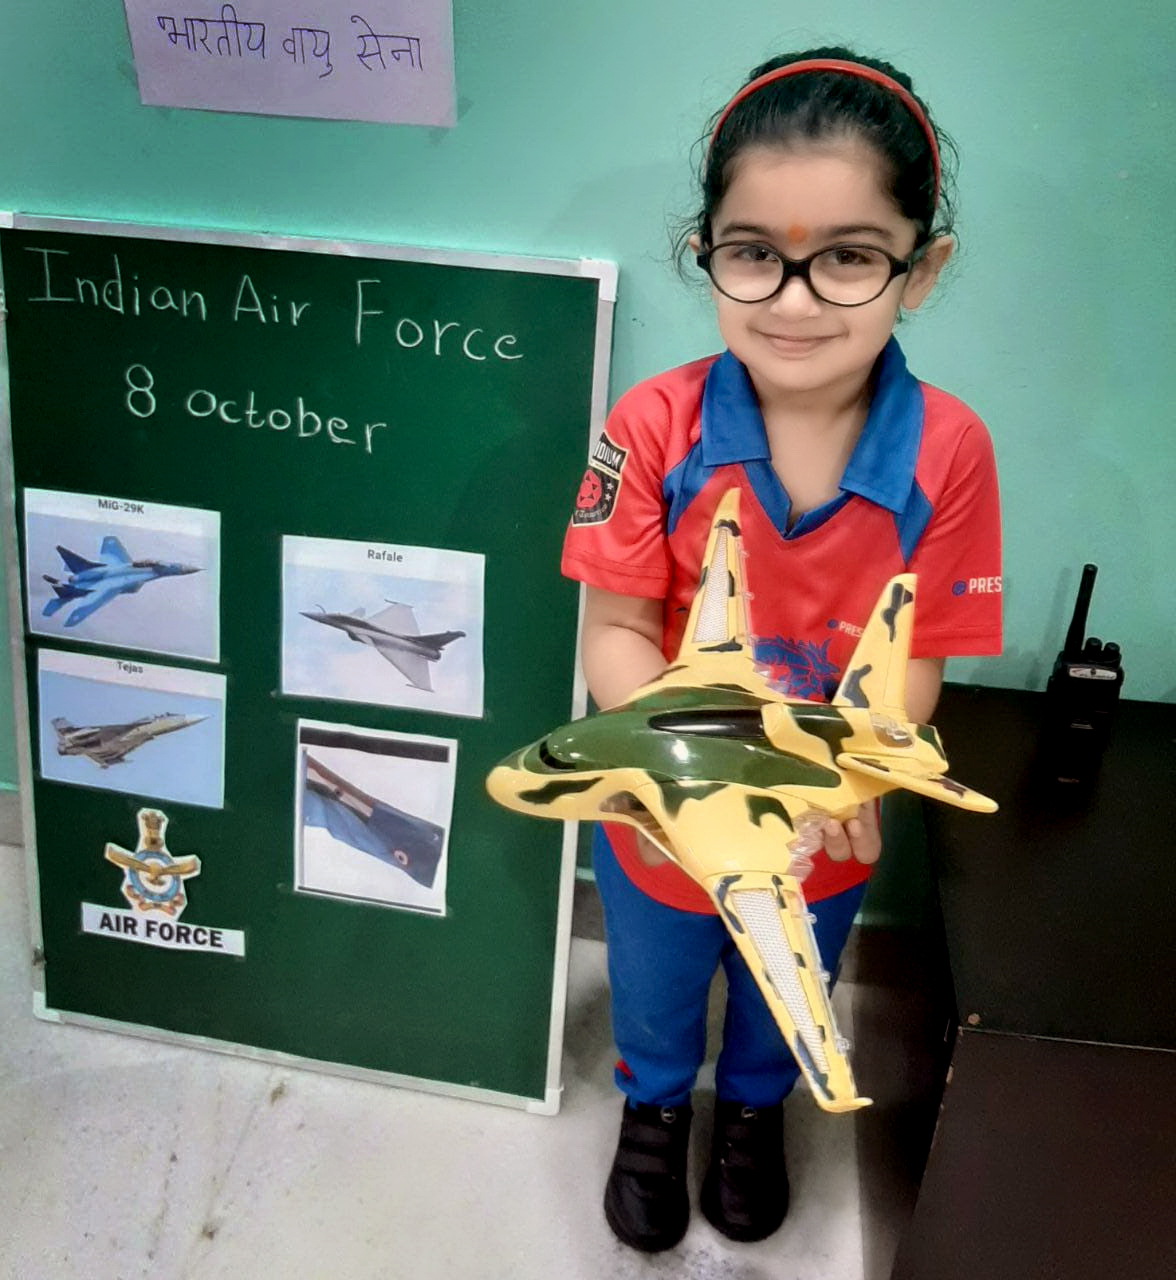 Indian Air Force is celebrated on October 8